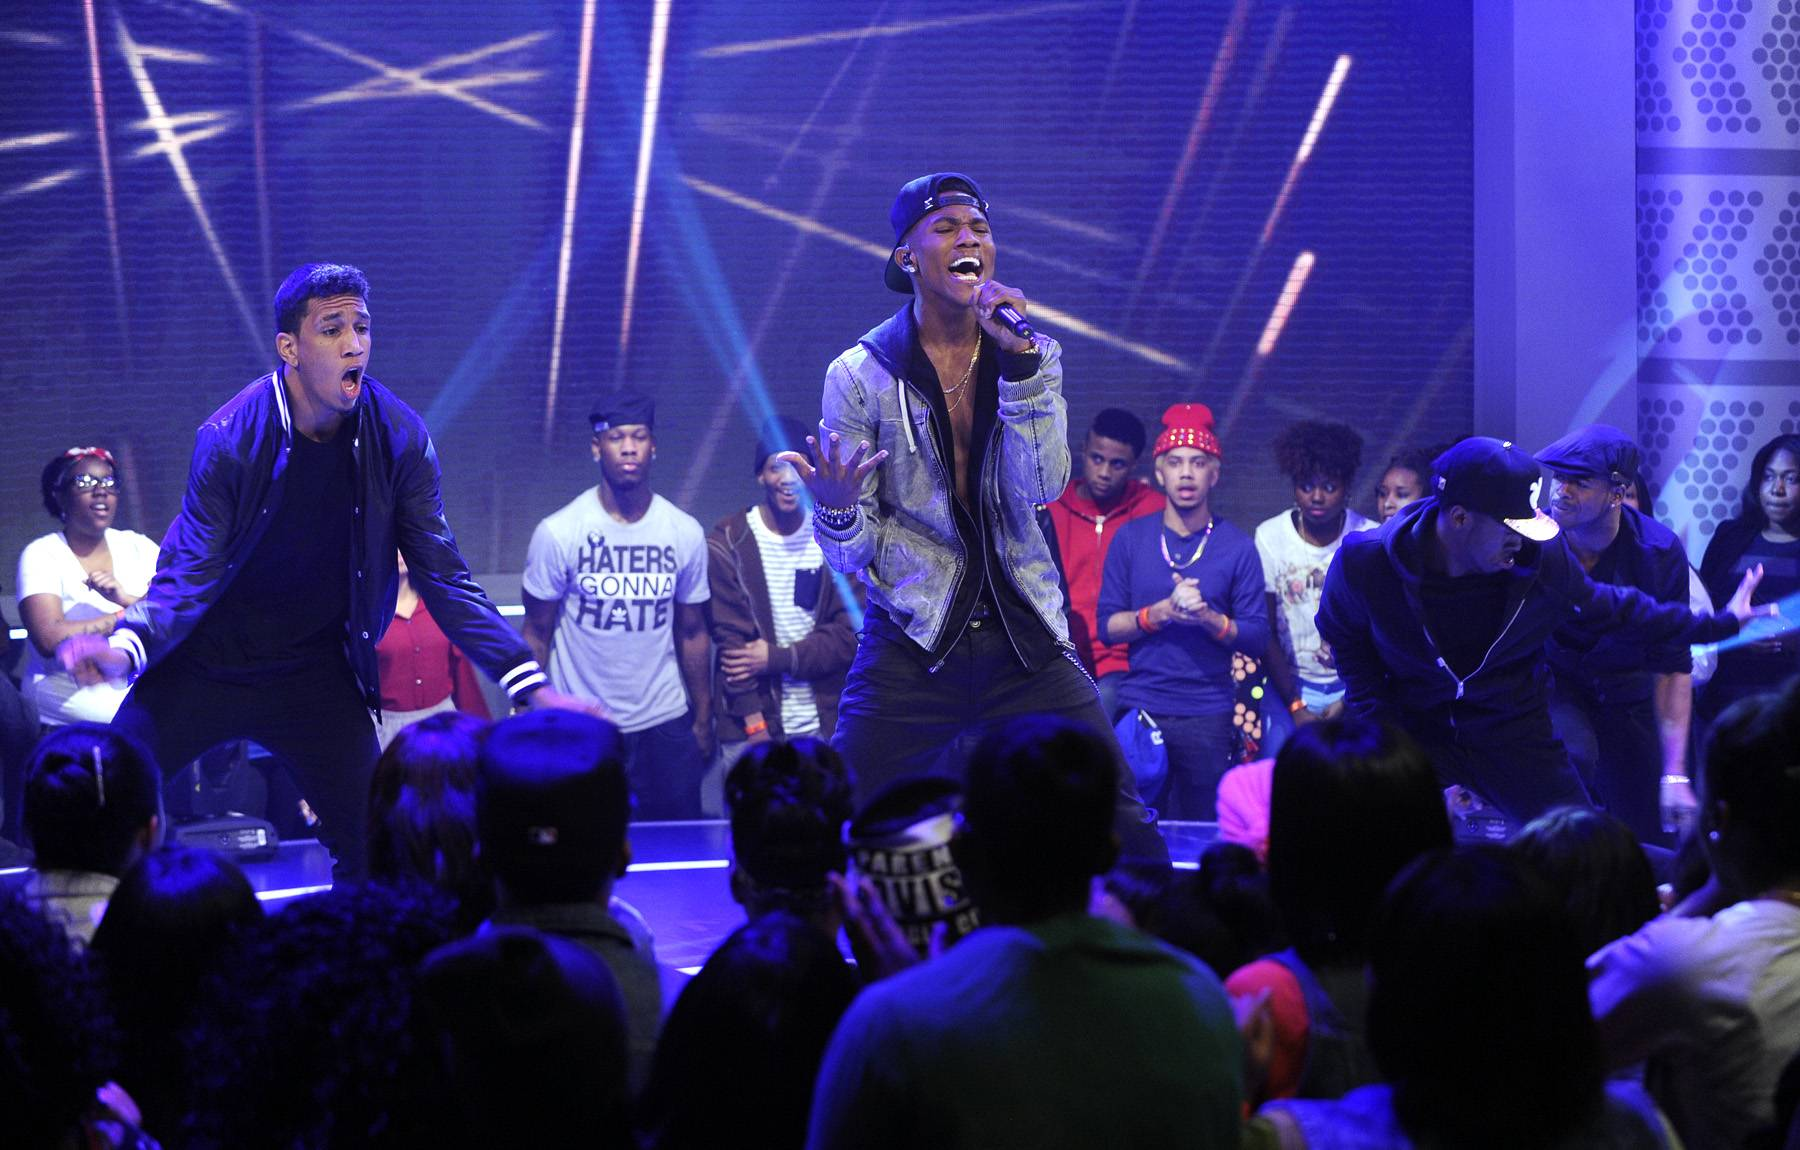 Now What - 106 & Park, March 11, 2013. (Photo: John Ricard / BET)